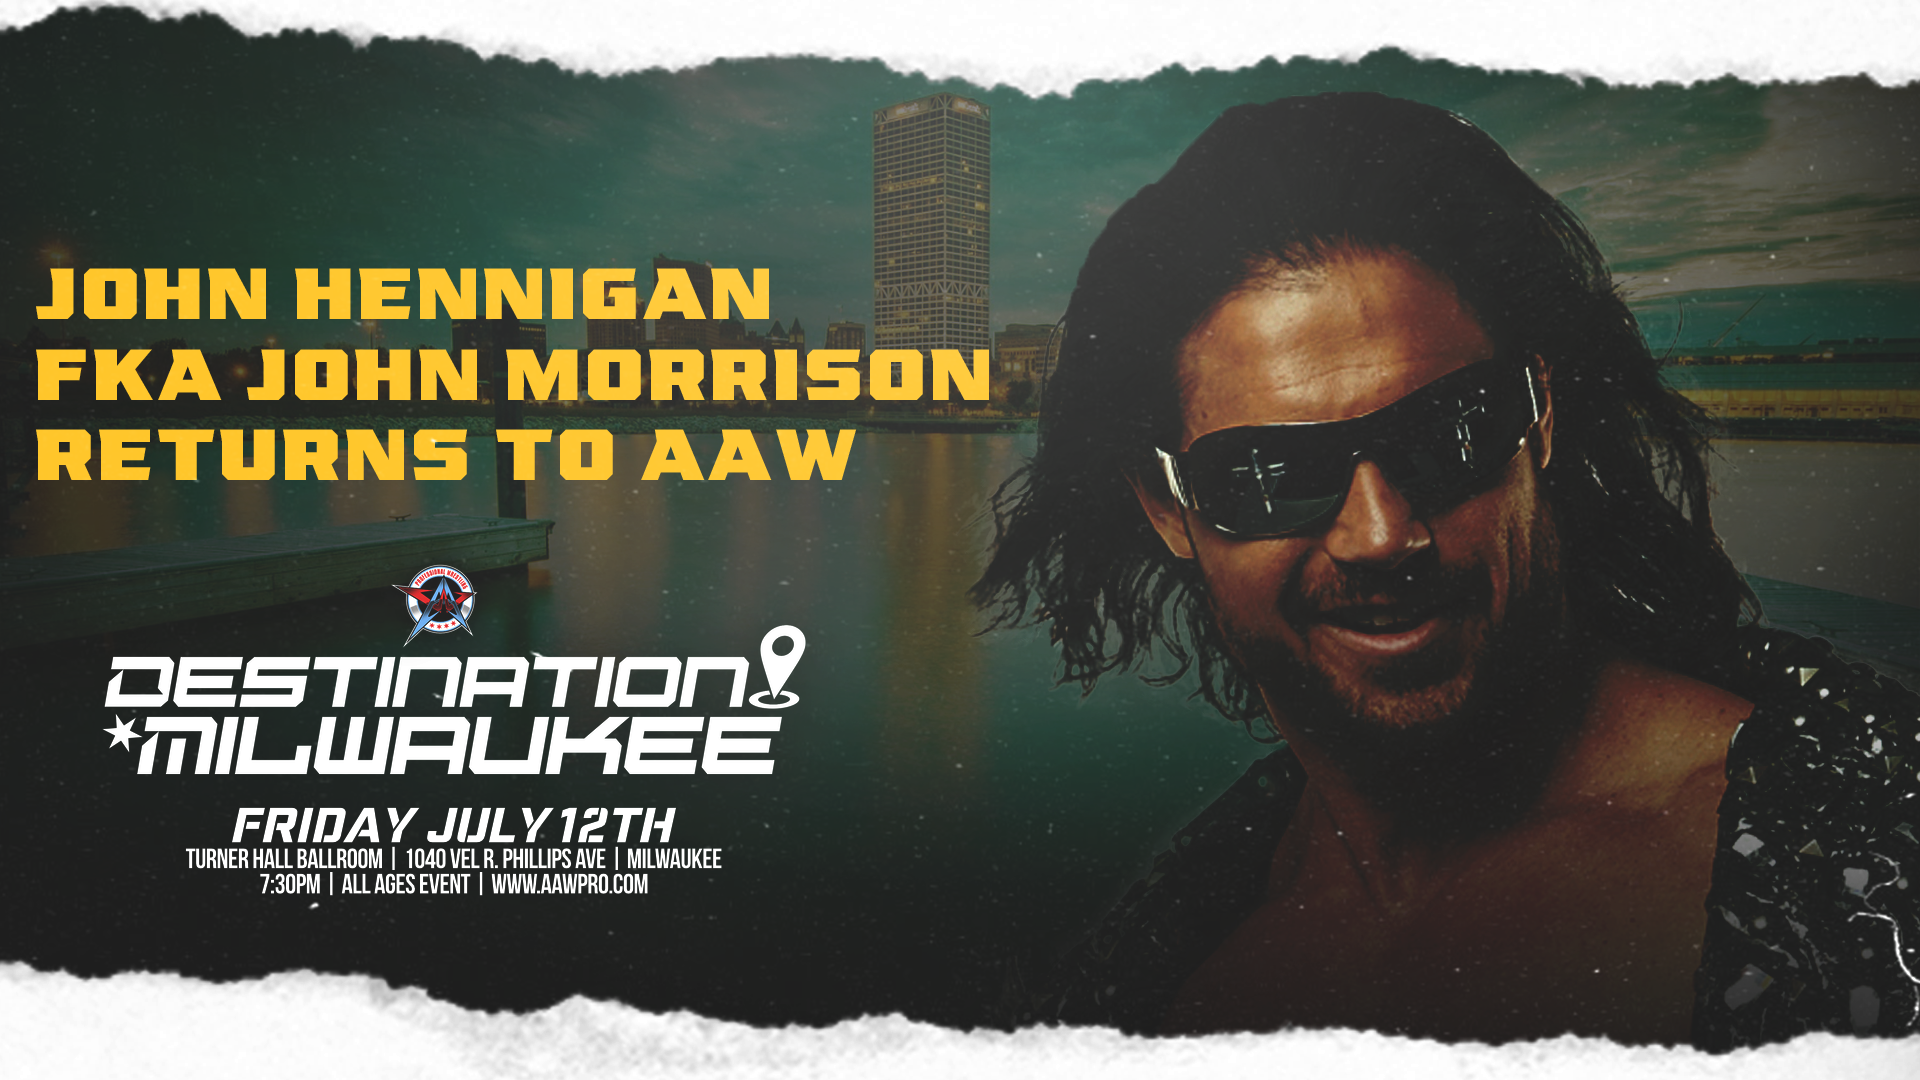 John Hennigan FKA John Morrison Returns At Destination Milwaukee